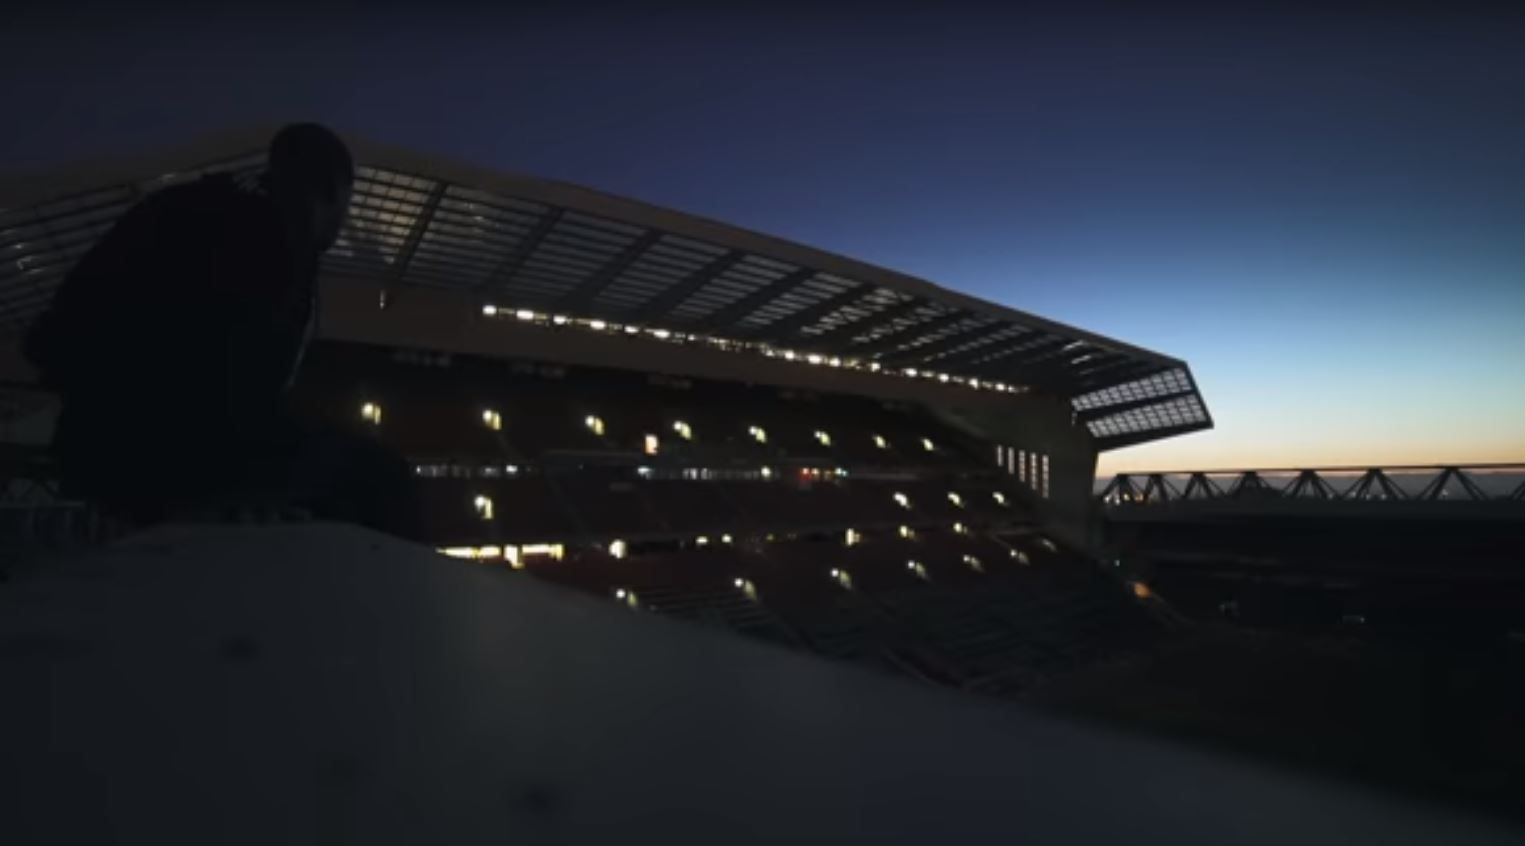 YouTuber CassOnline filmed the view from the Anfield roof after sneaking into Liverpool's stadium